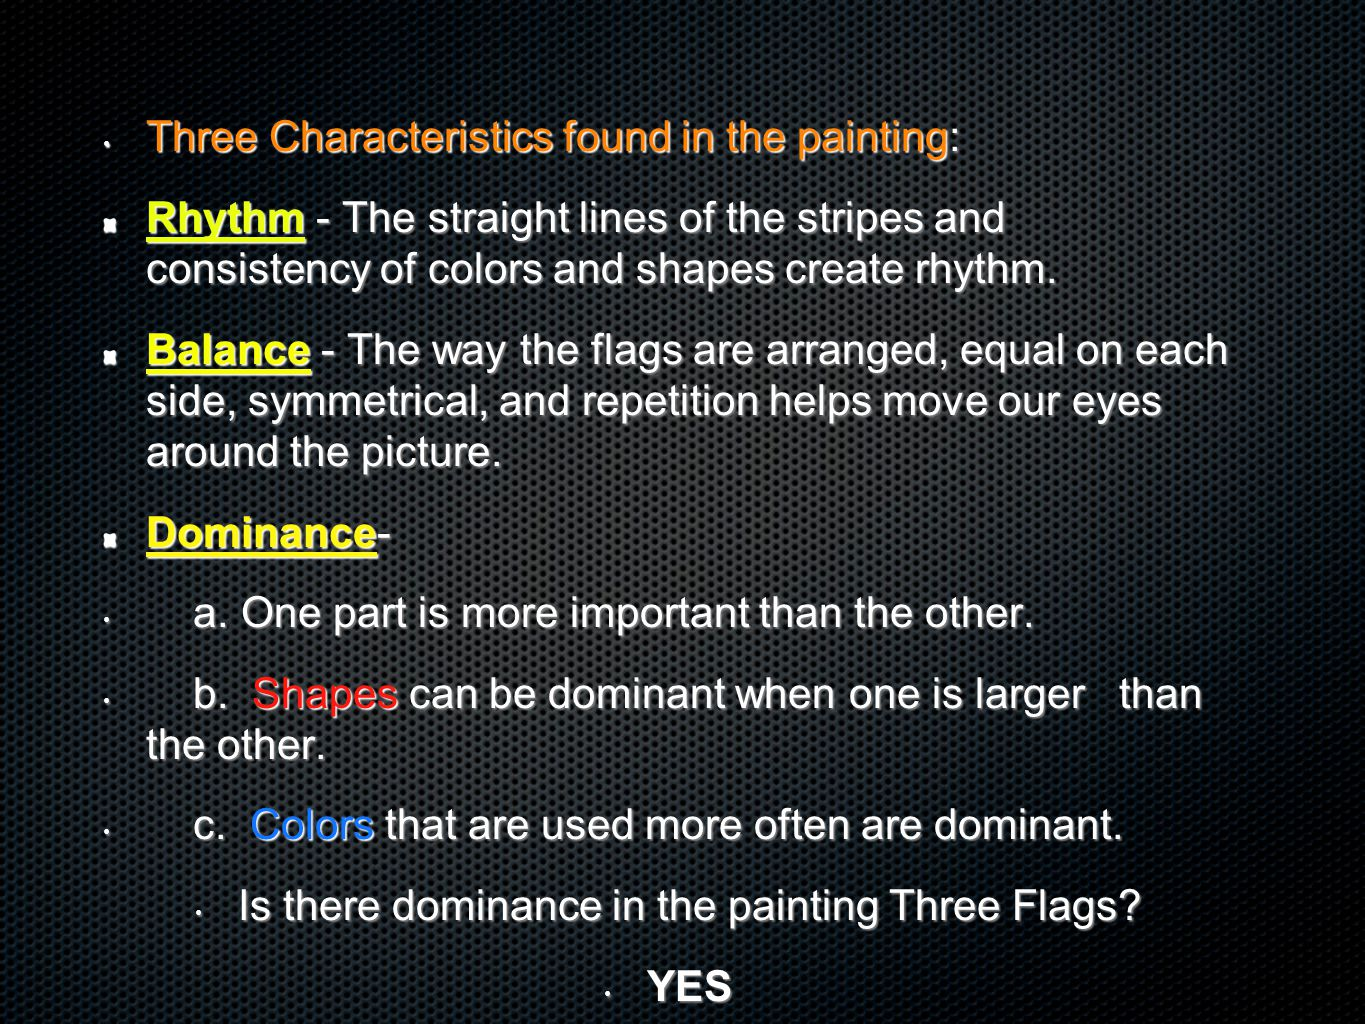 Is there dominance in the painting Three Flags